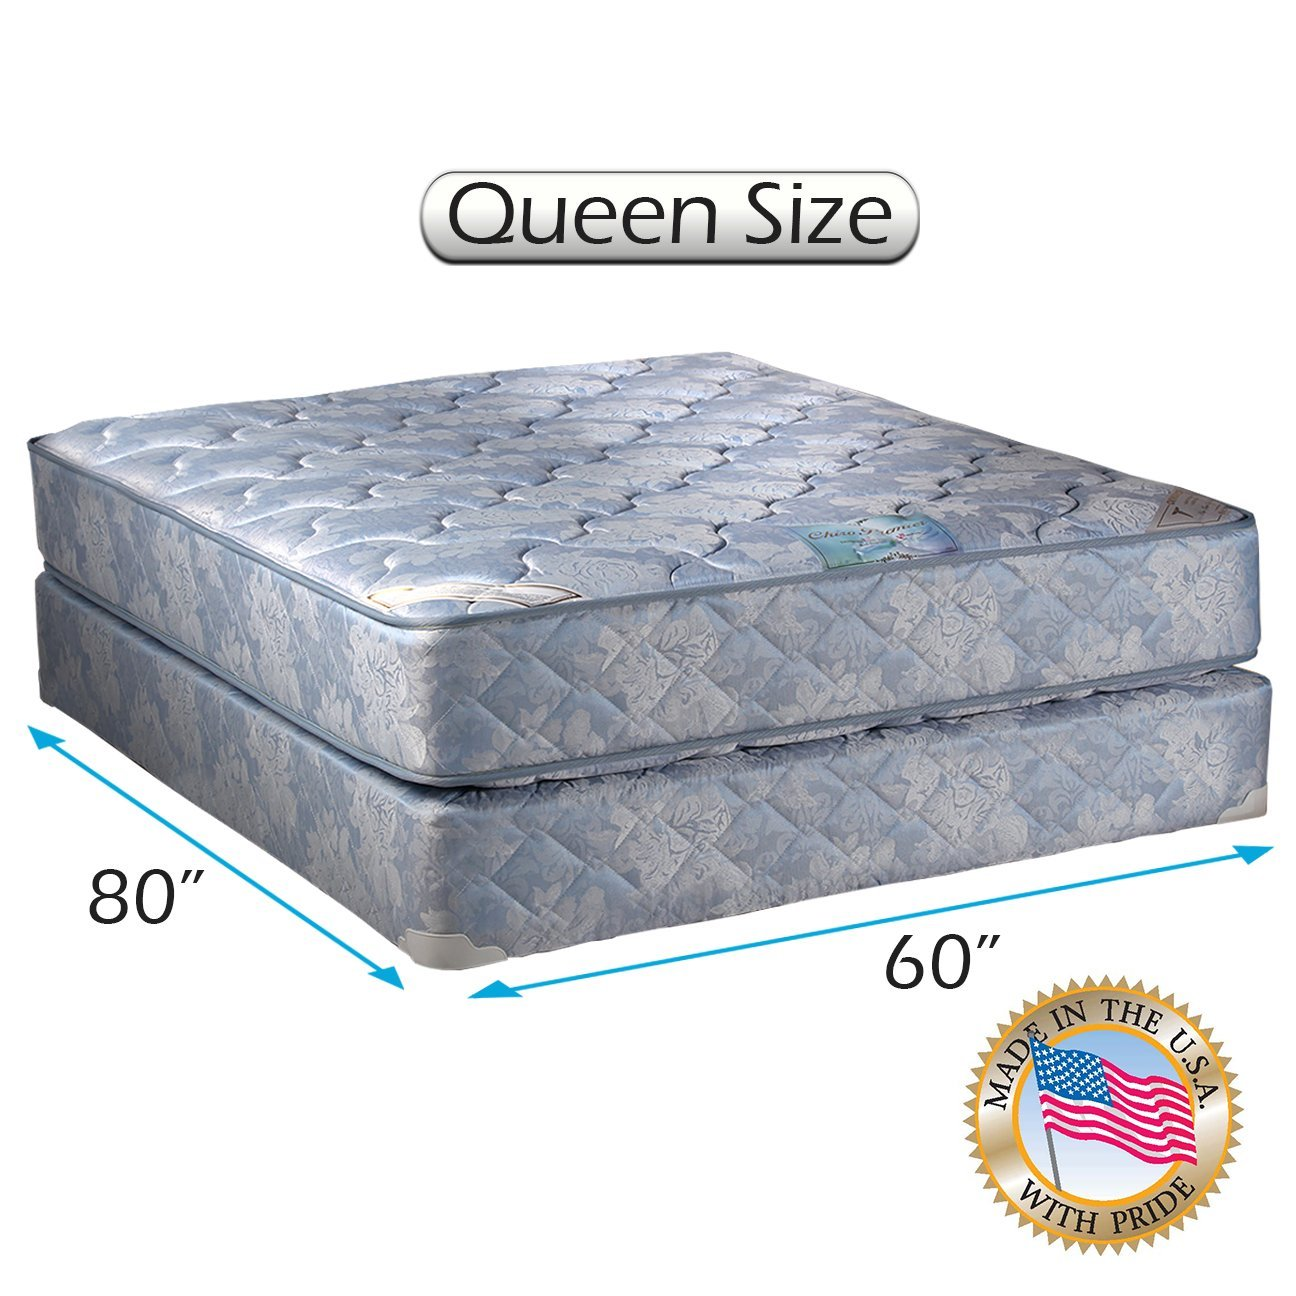 Chiro Premier 2-Sided (Blue Color) Queen Size Mattress set with Mattress Cover Protector Included - Fully Assembled, Back Support, Long Lasting By Dream Solutions USA